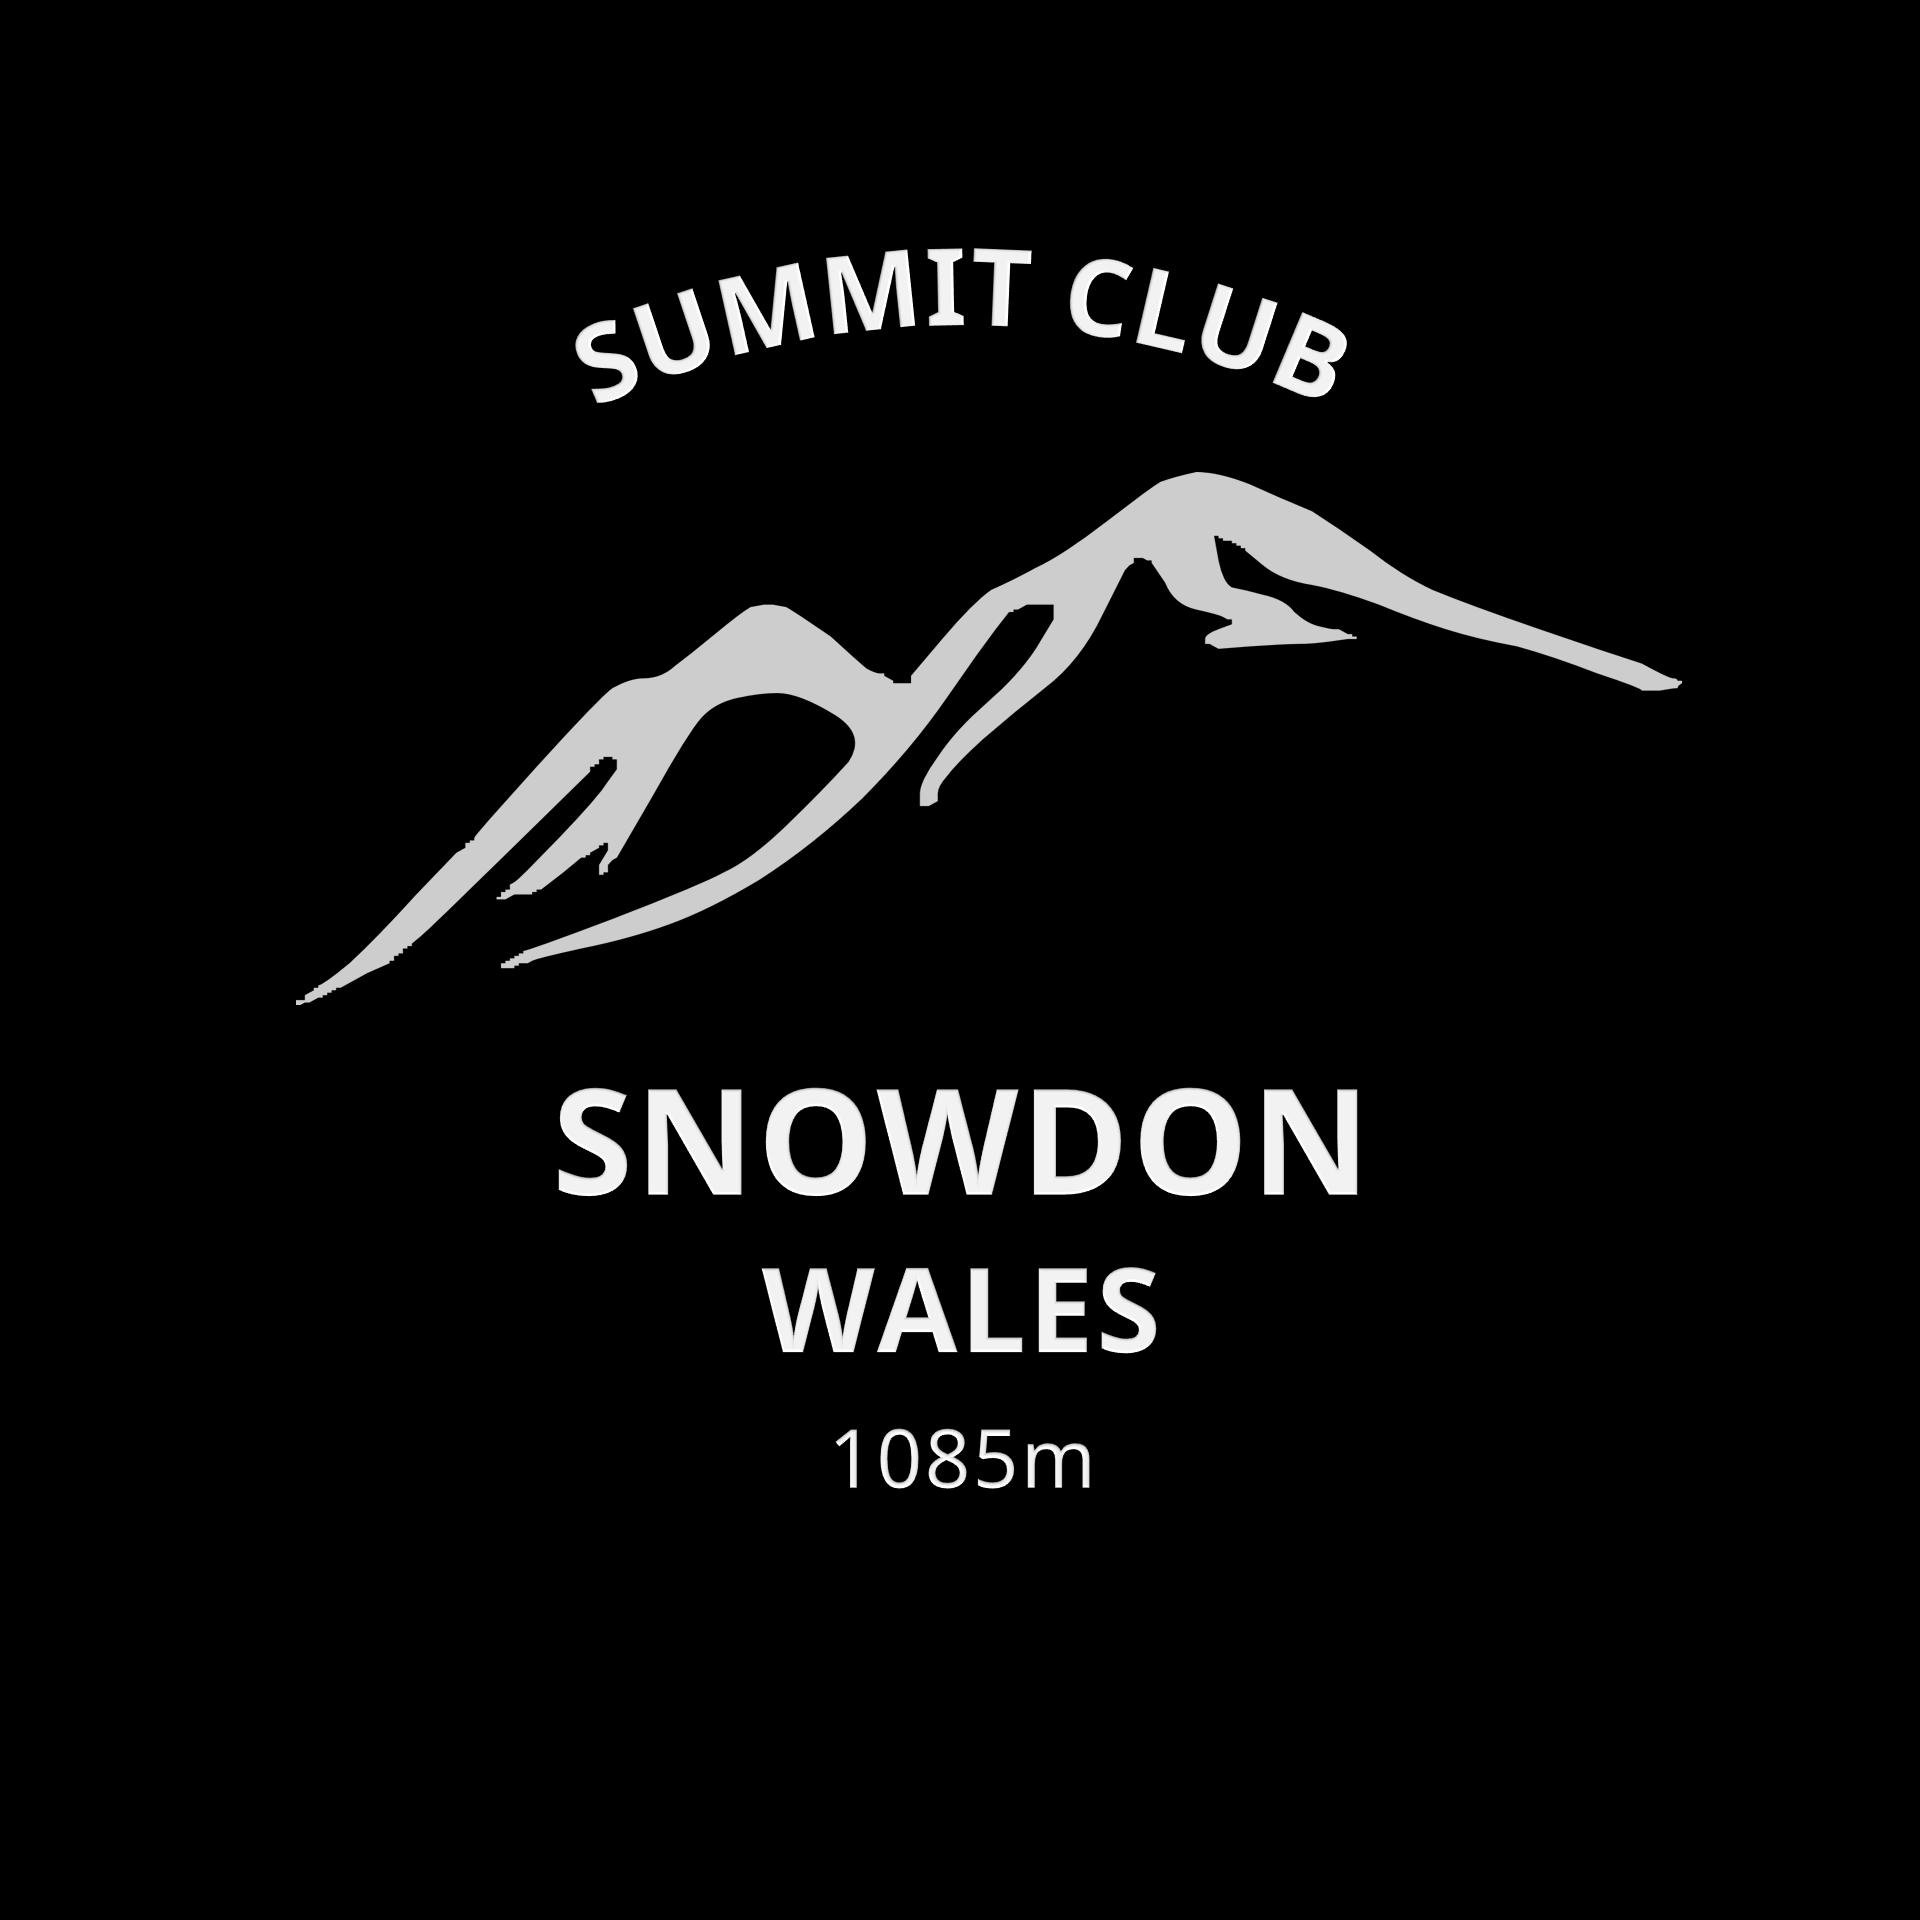 Snowdon Summit Club